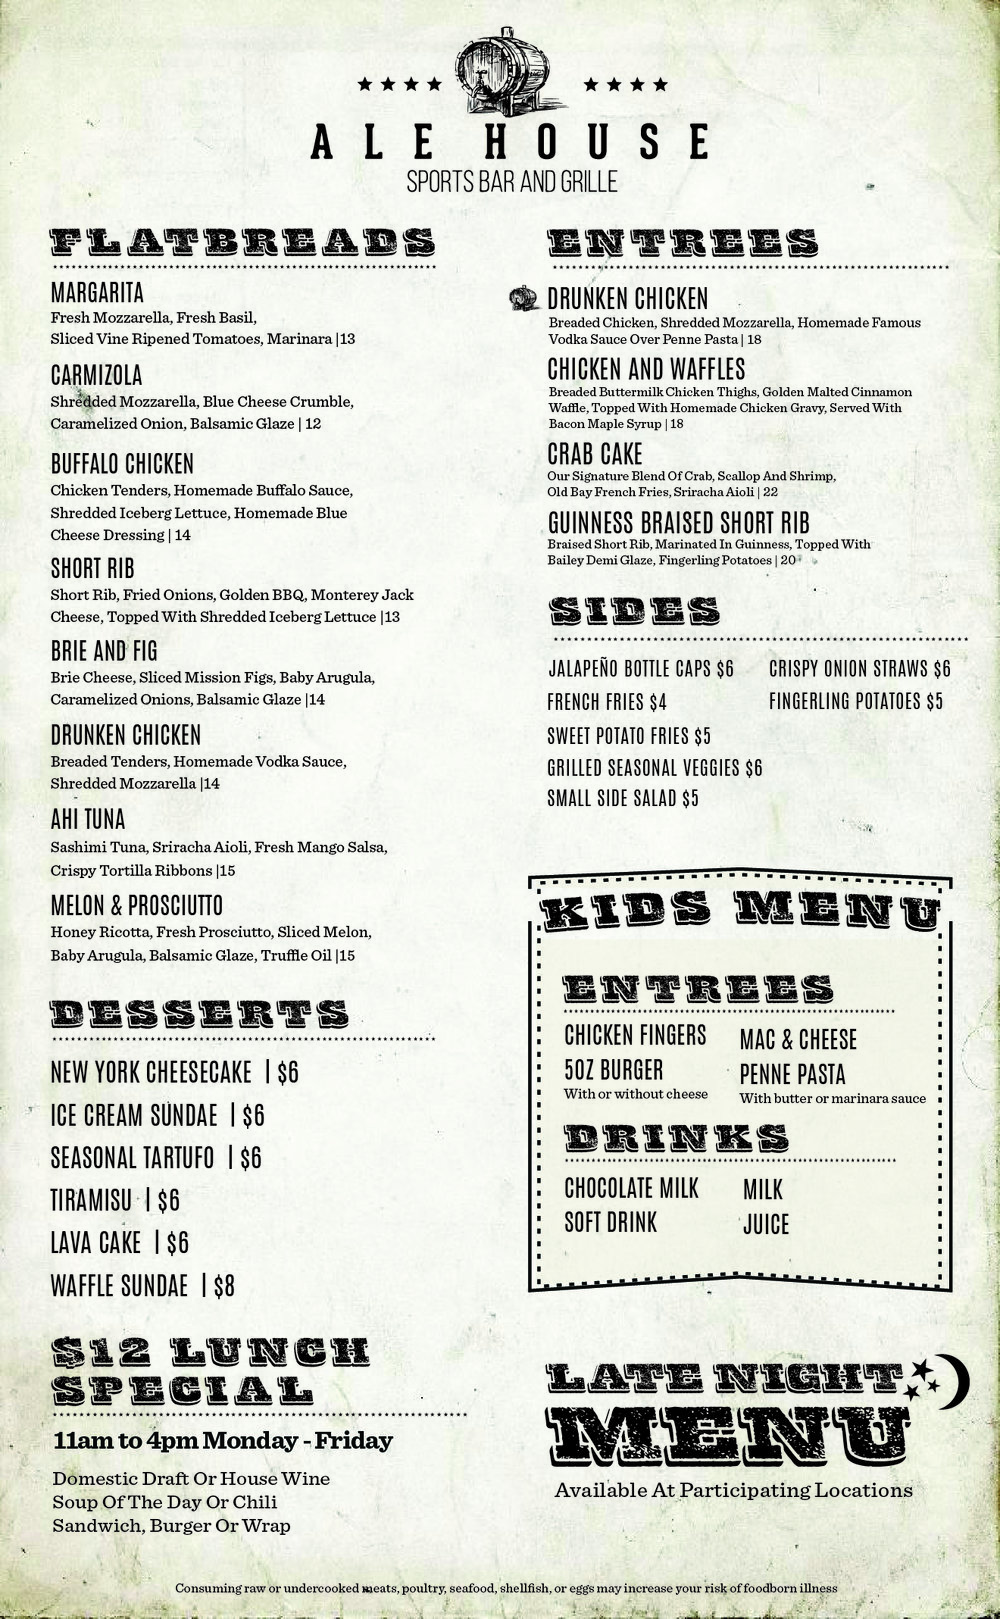 SUMMER 18 ALE HOUSE MENU-01.jpg